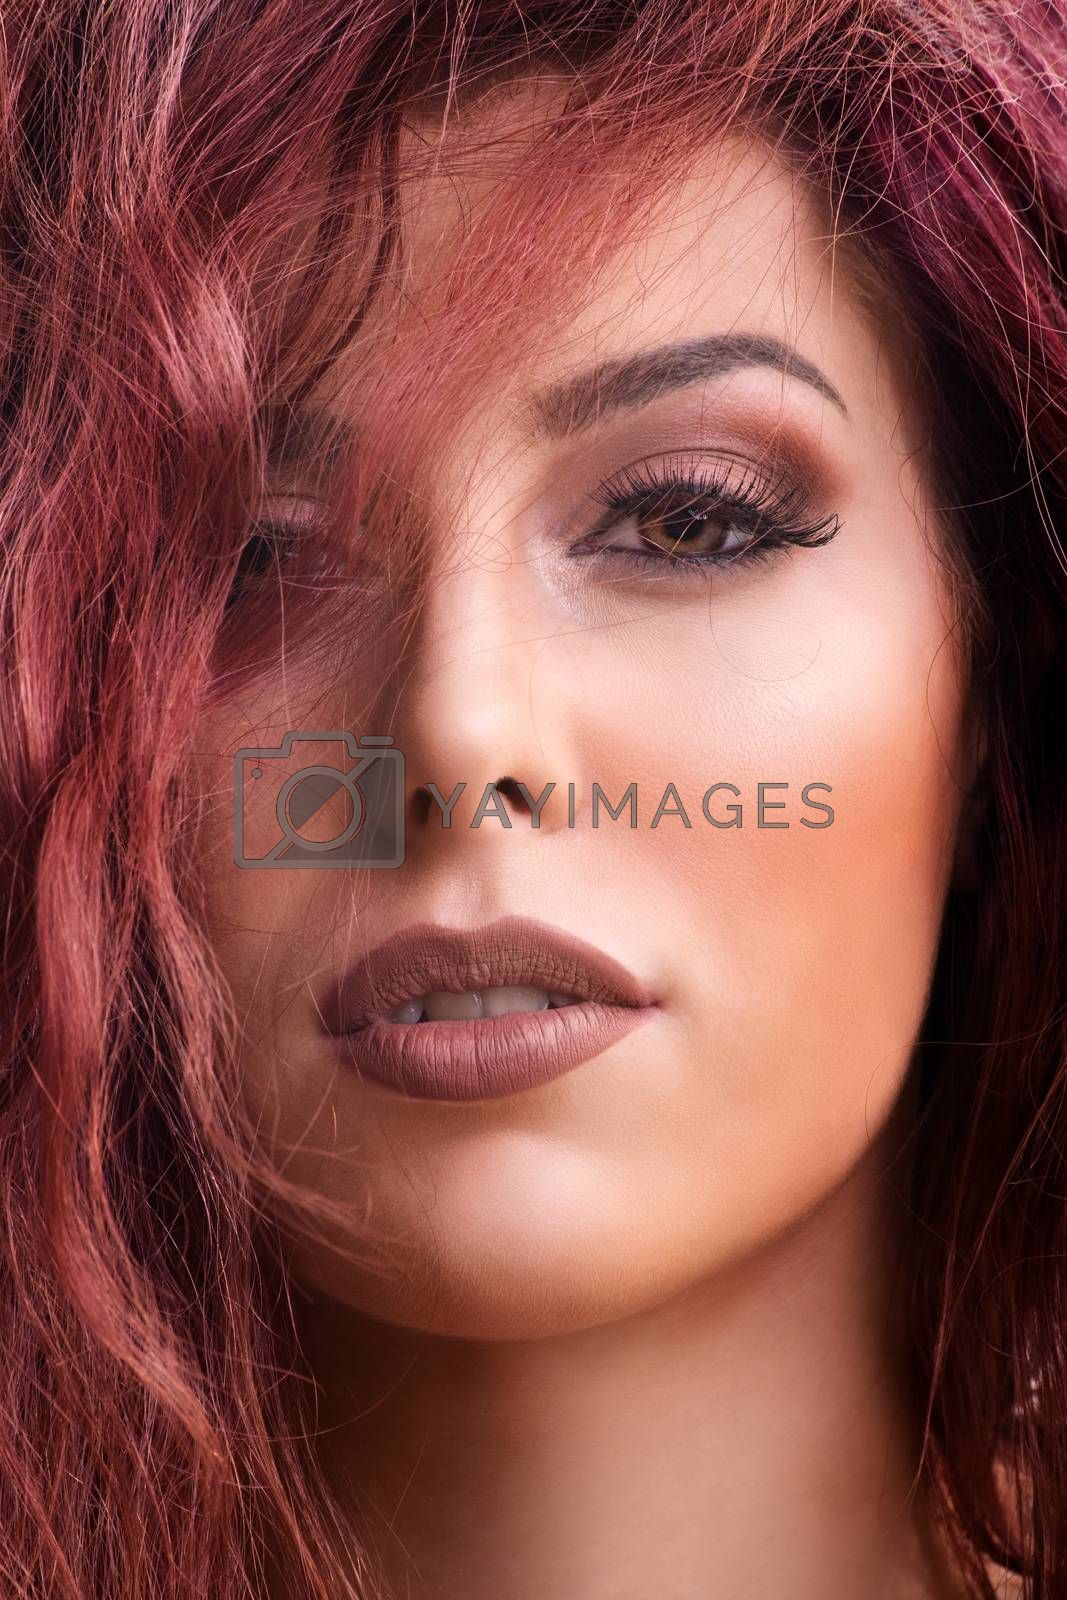 Close up portrait shot of a beautiful redhead young woman with dark smokey eye makeup and red lipstick with hair over her eye. Female fashion. Beautiful young woman with perfect skin and long hair.